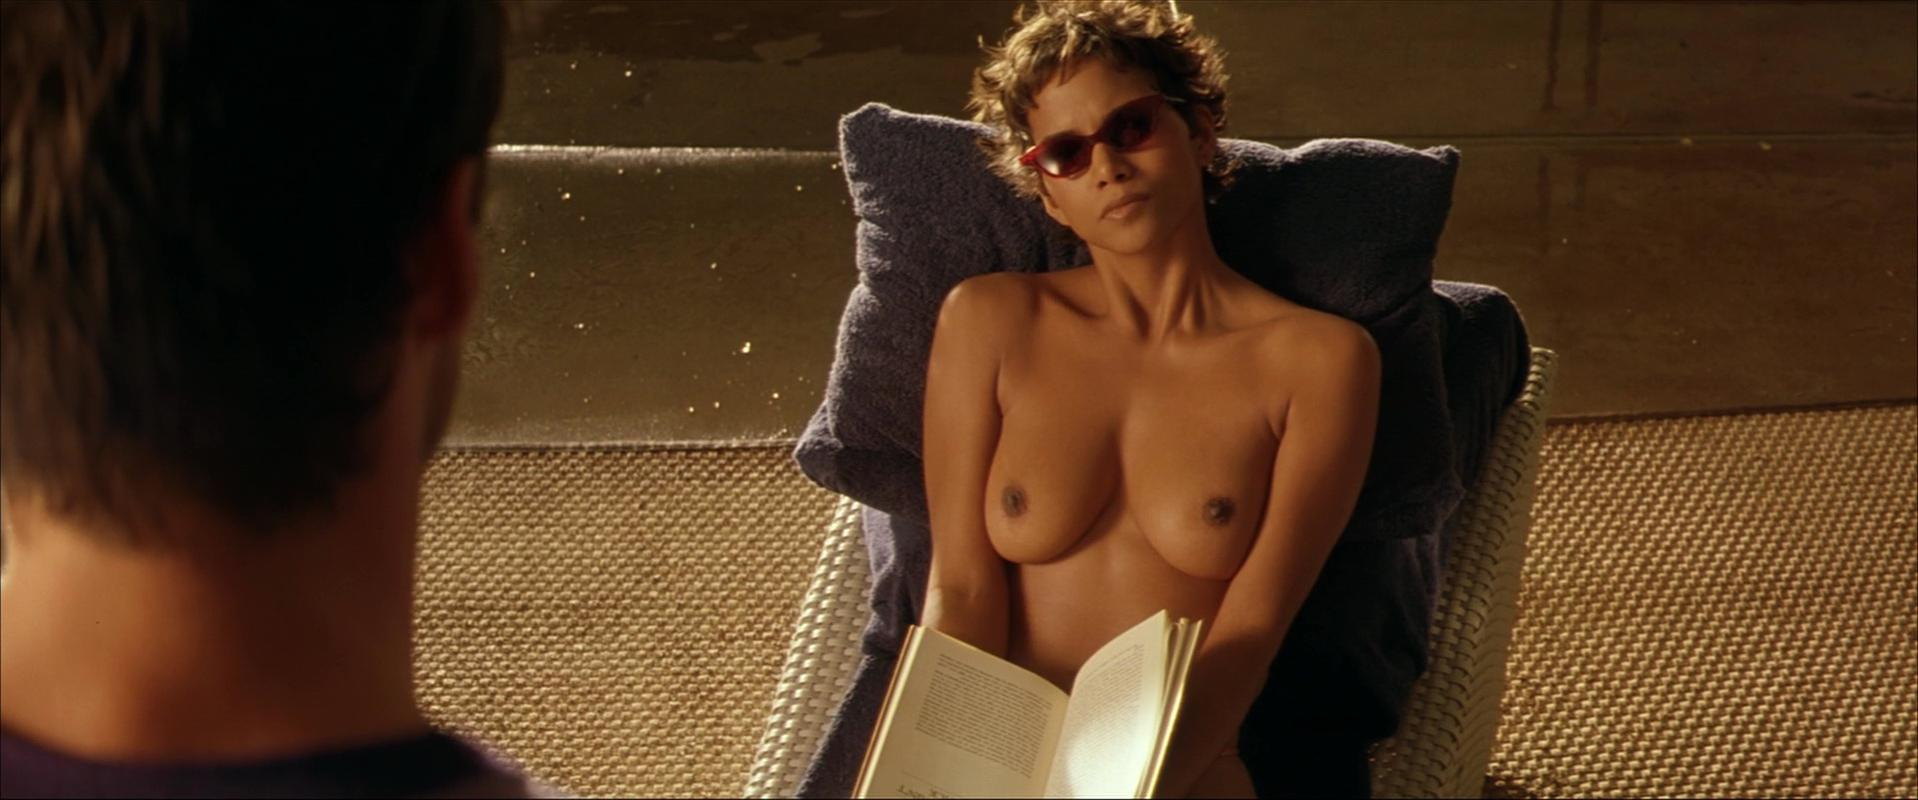 Halle berry naked tits